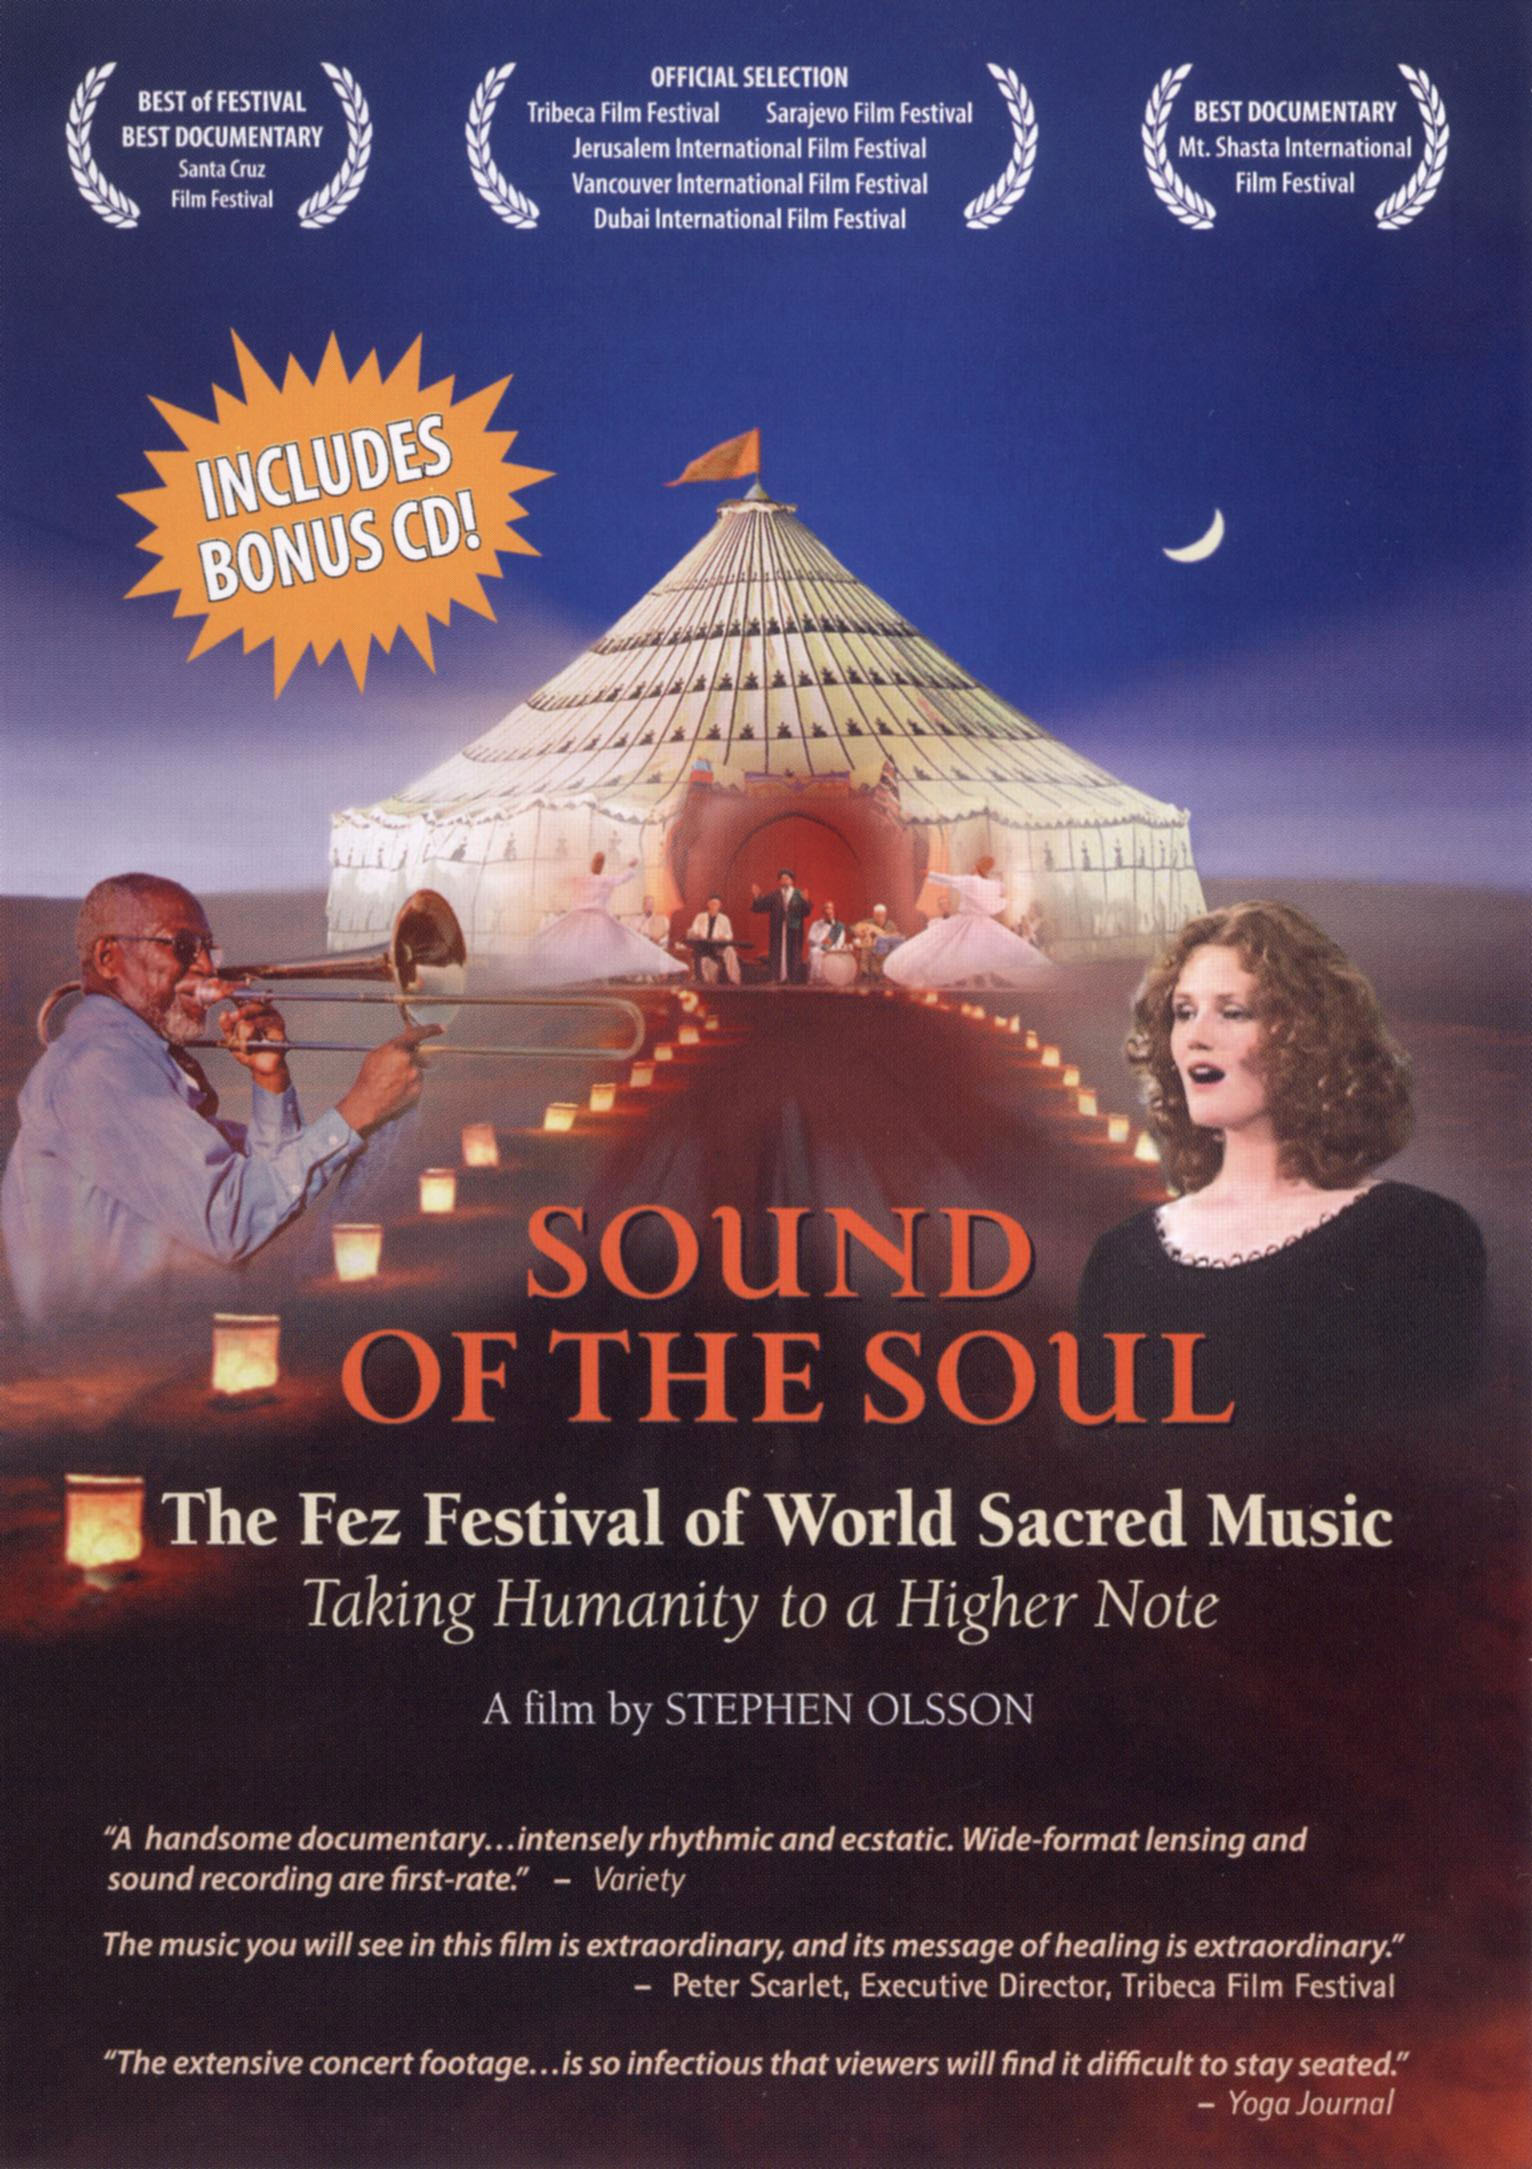 Sound of the Soul: The Fez Festival of World Sacred Music